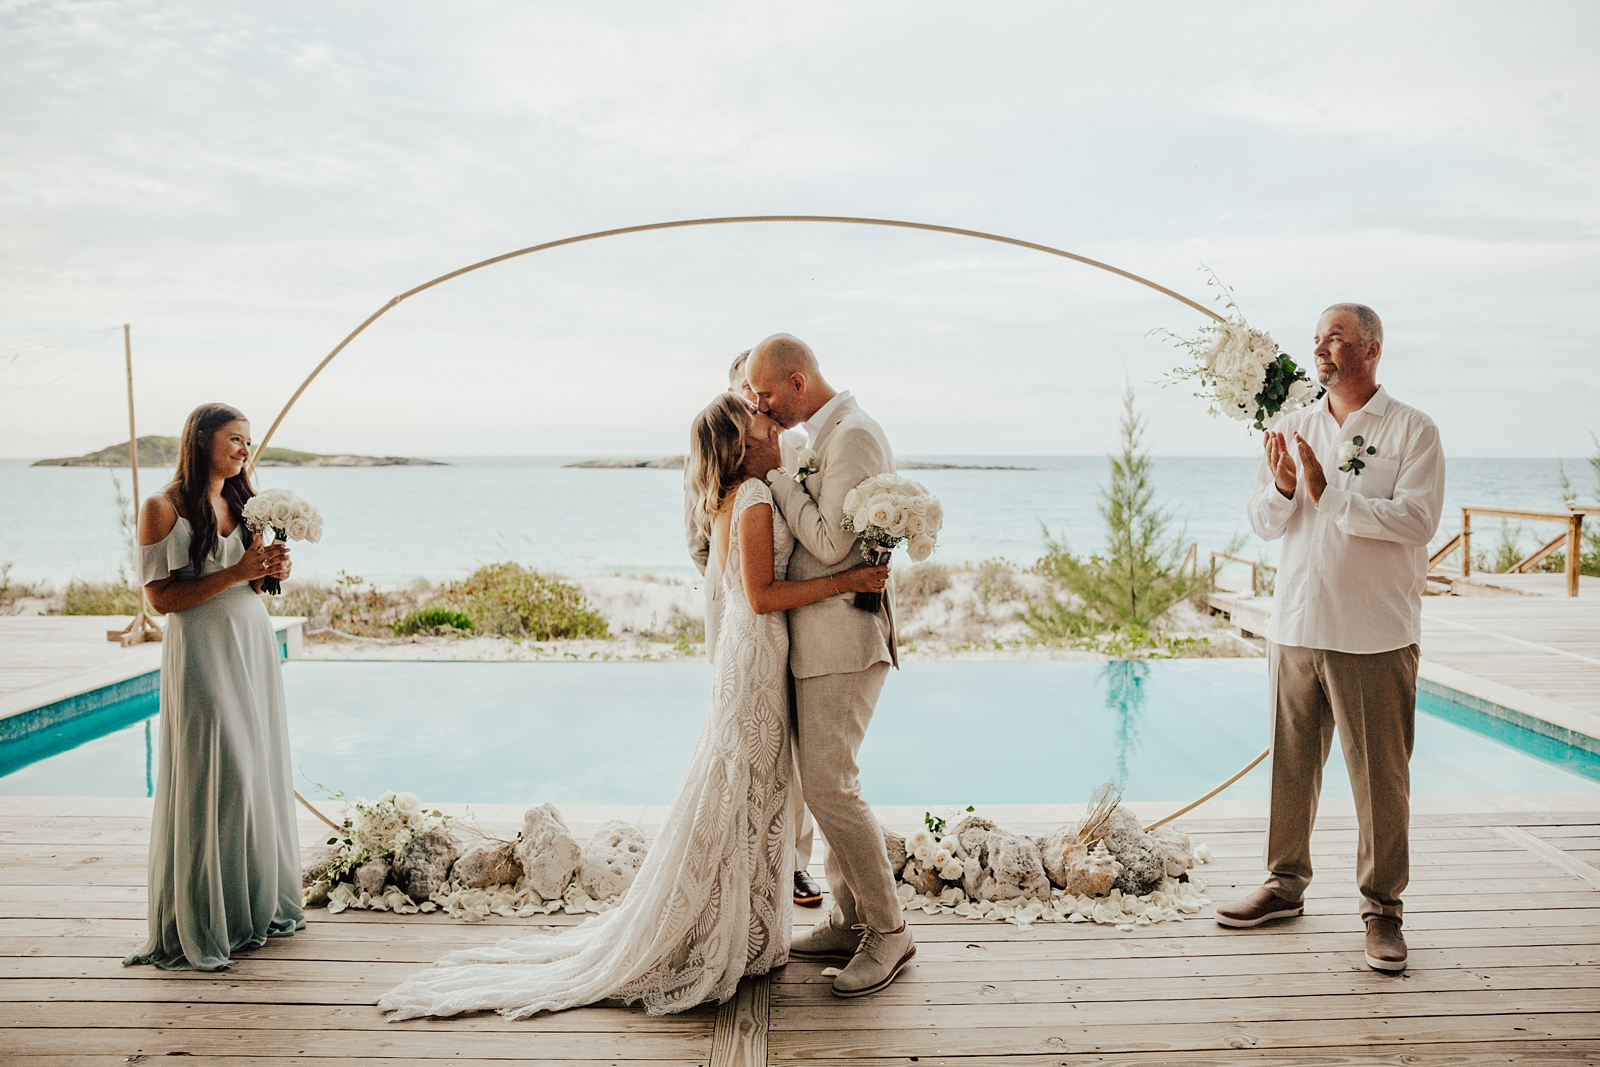 Jenni & Andrew Intimate Beach Destination Wedding in Little Exuma, Bahamas_0512.jpg